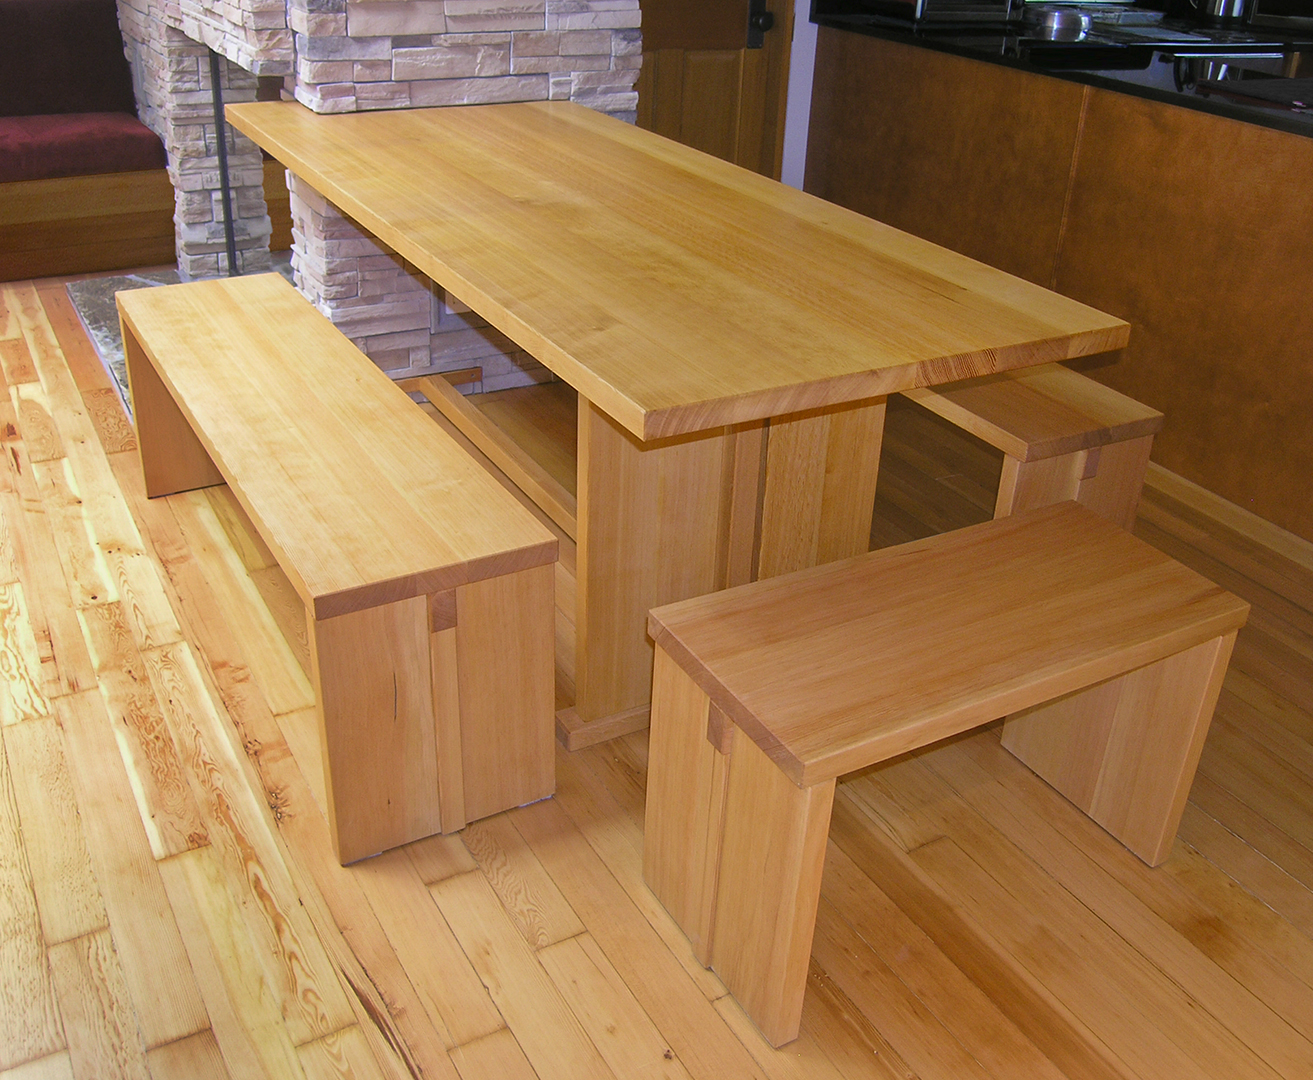 Custom wood furniture vancouve ever x wood for Custom wood furniture